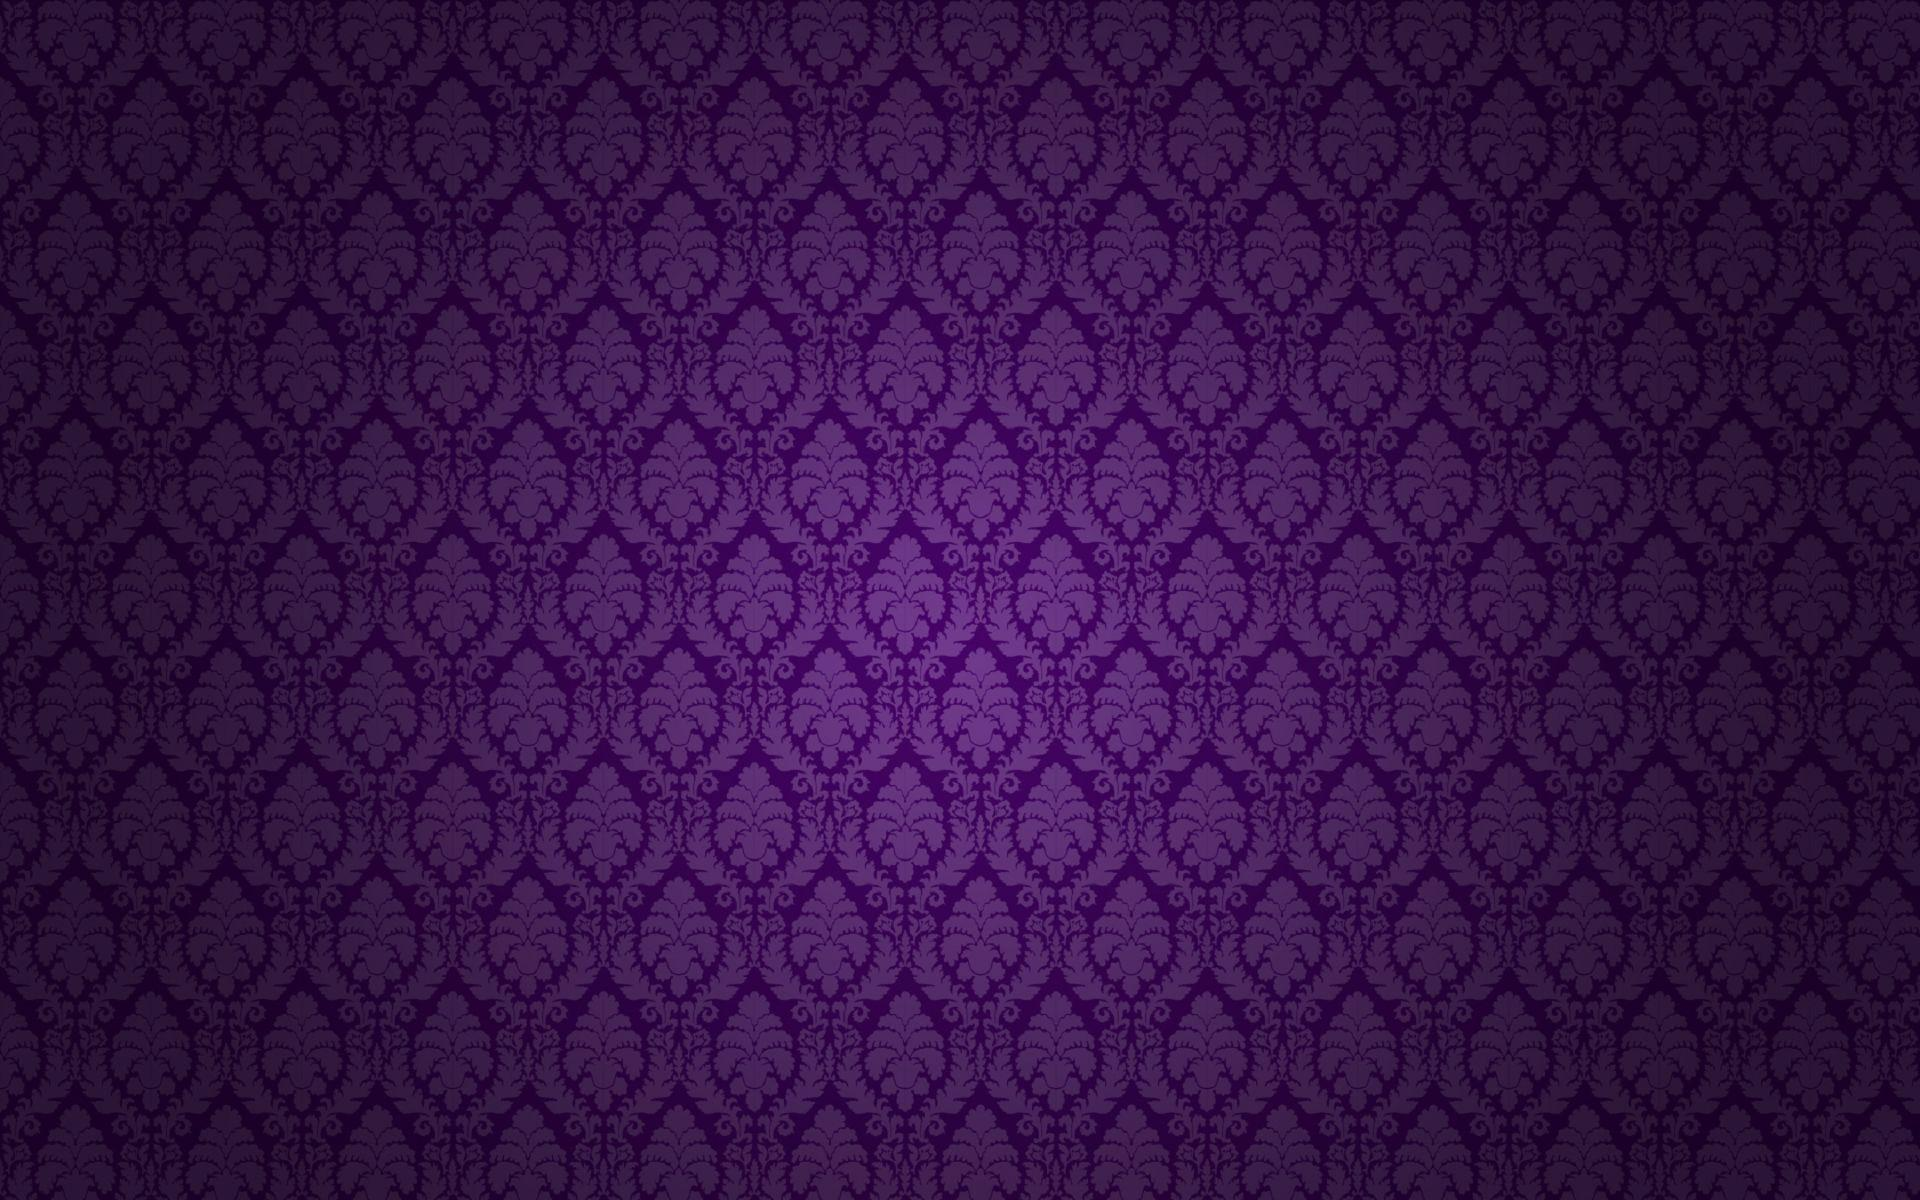 Dark Purple Wallpapers   Wallpaper Cave Dark Purple Wallpapers   Full HD wallpaper search